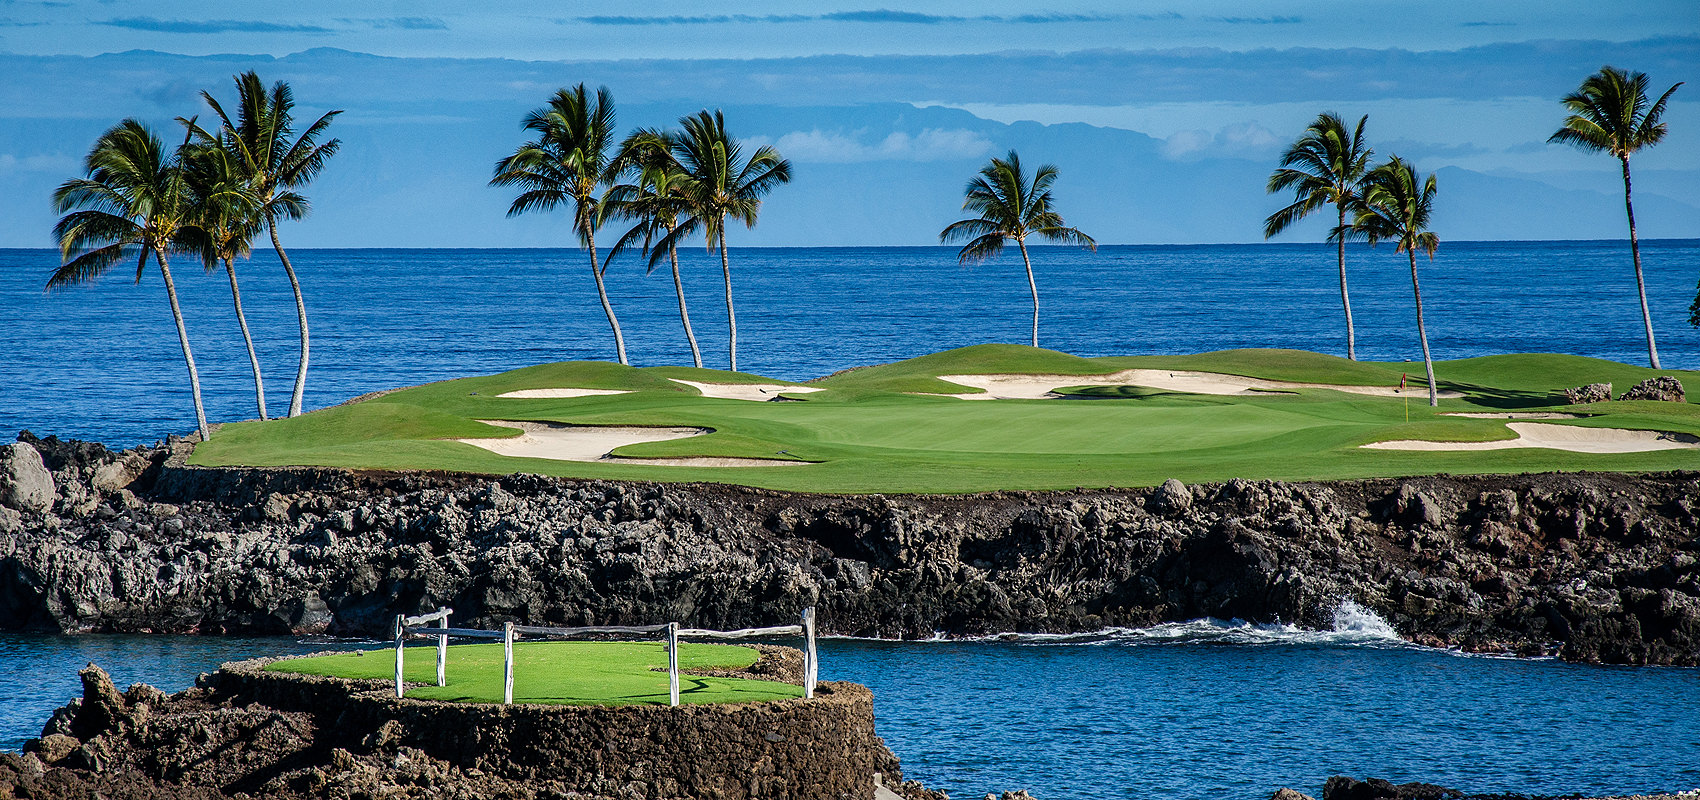 Big Island & Waikiki Hawaii ladies golf tour